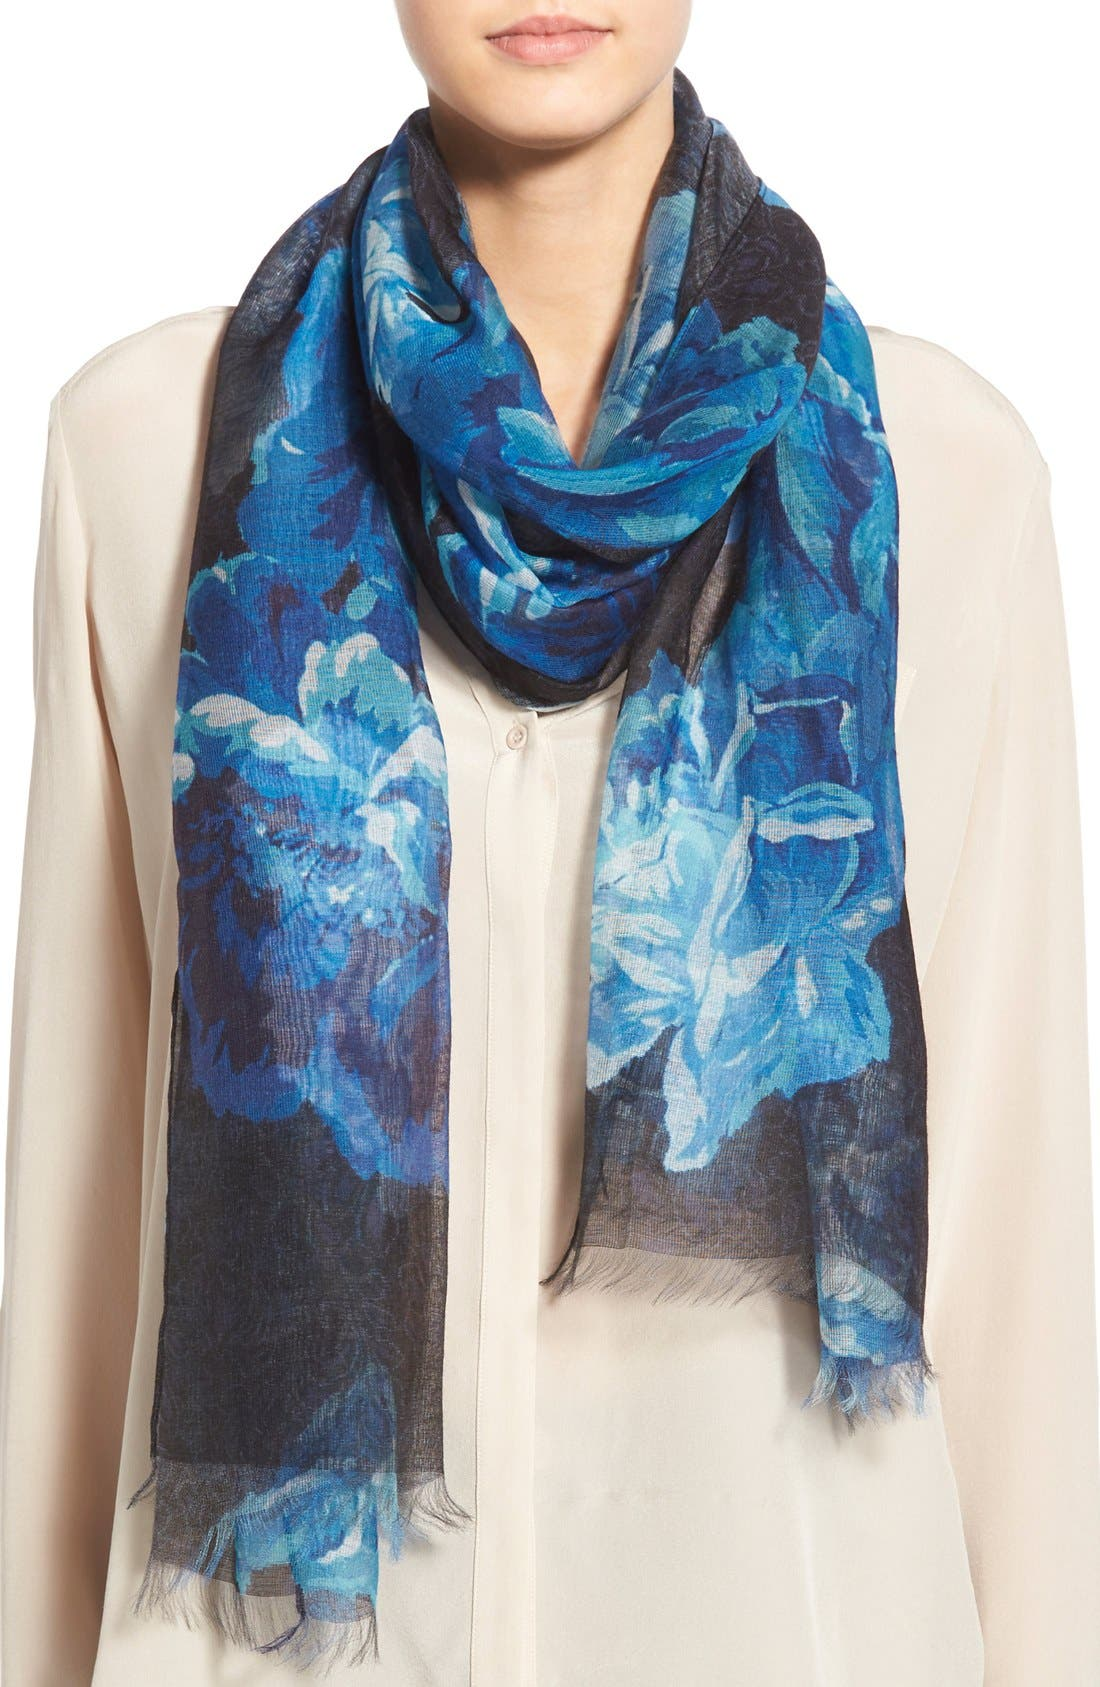 Badgley Mischka 'Sheer Rose' Floral Print Modal & Silk Scarf